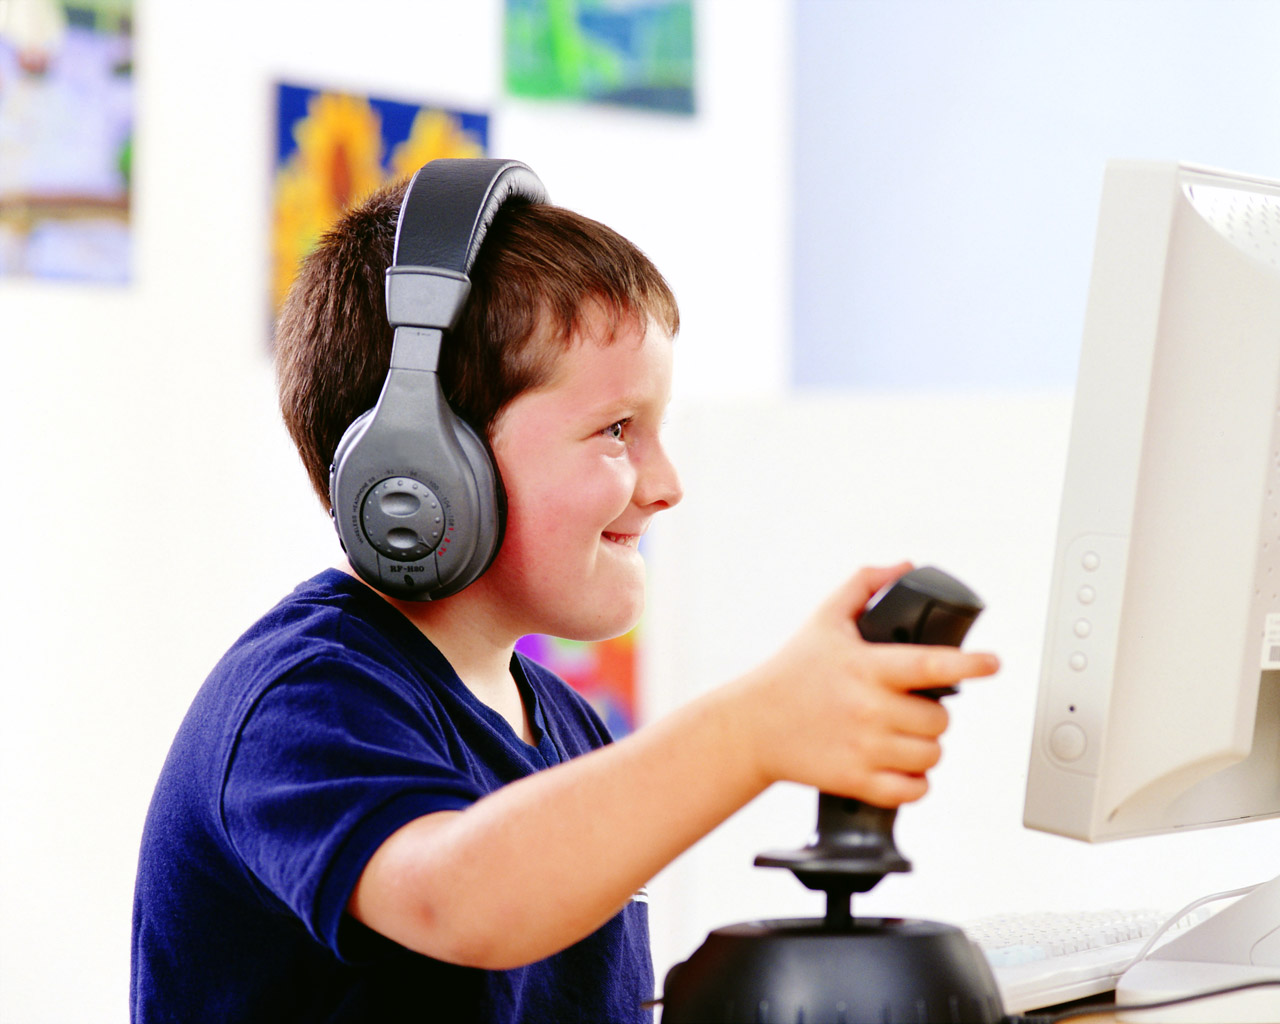 Child and computer games: how to get rid of addiction 73